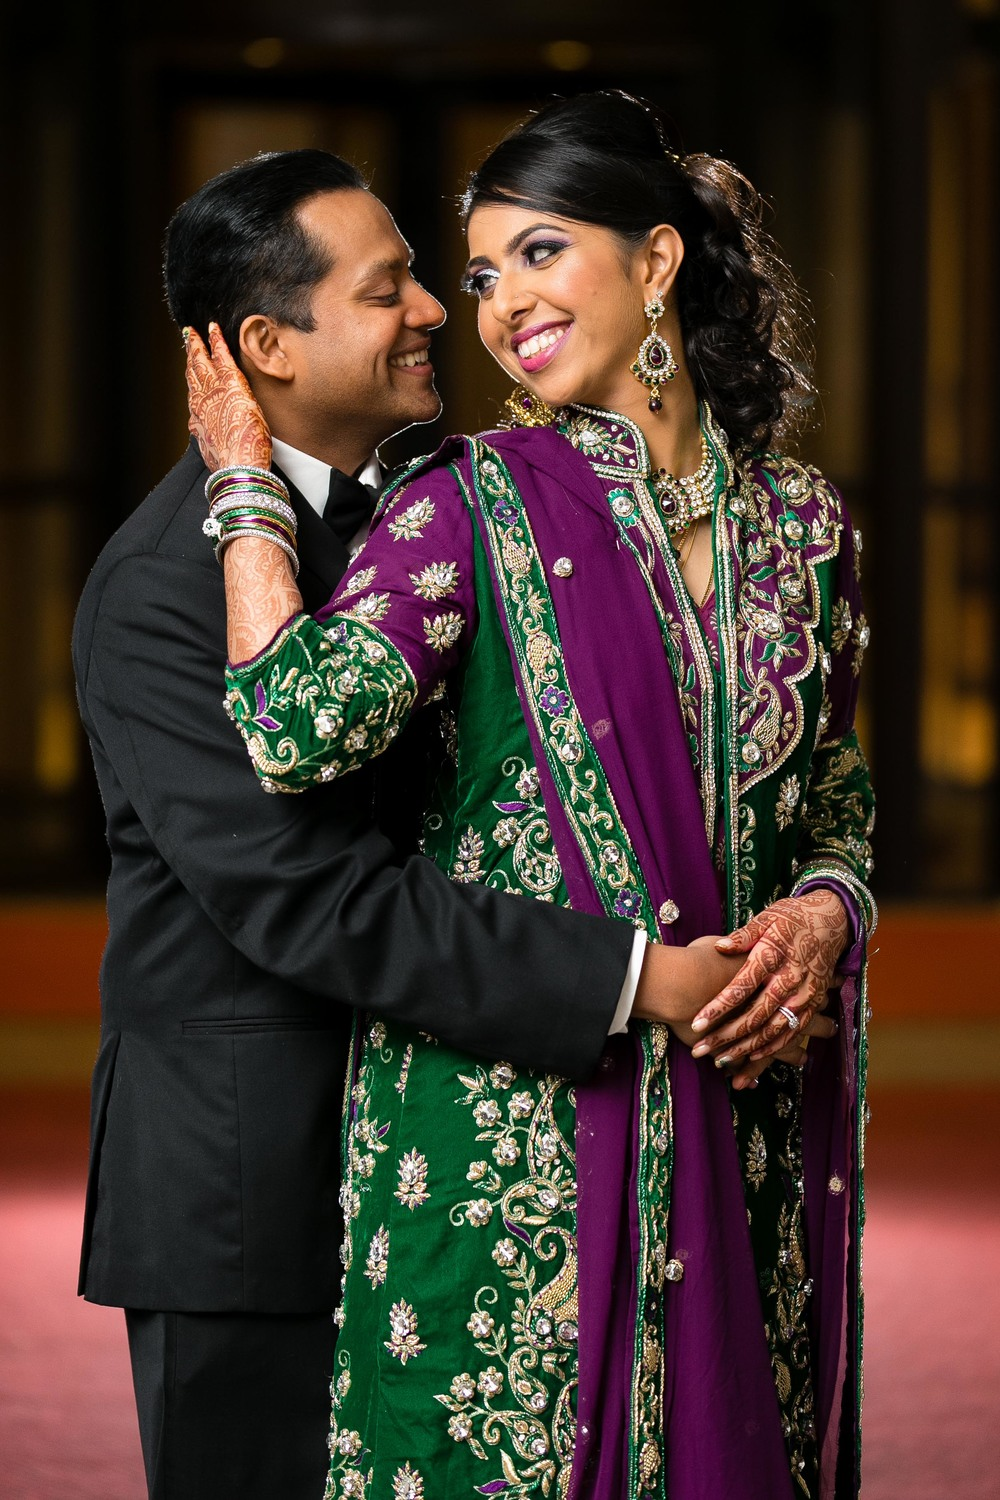 Luxurious-Indian-Wedding-Marriott-Boston-Massachusetts-Documentary-Wedding-Photography-by-Jacek-Dolata-33.jpg